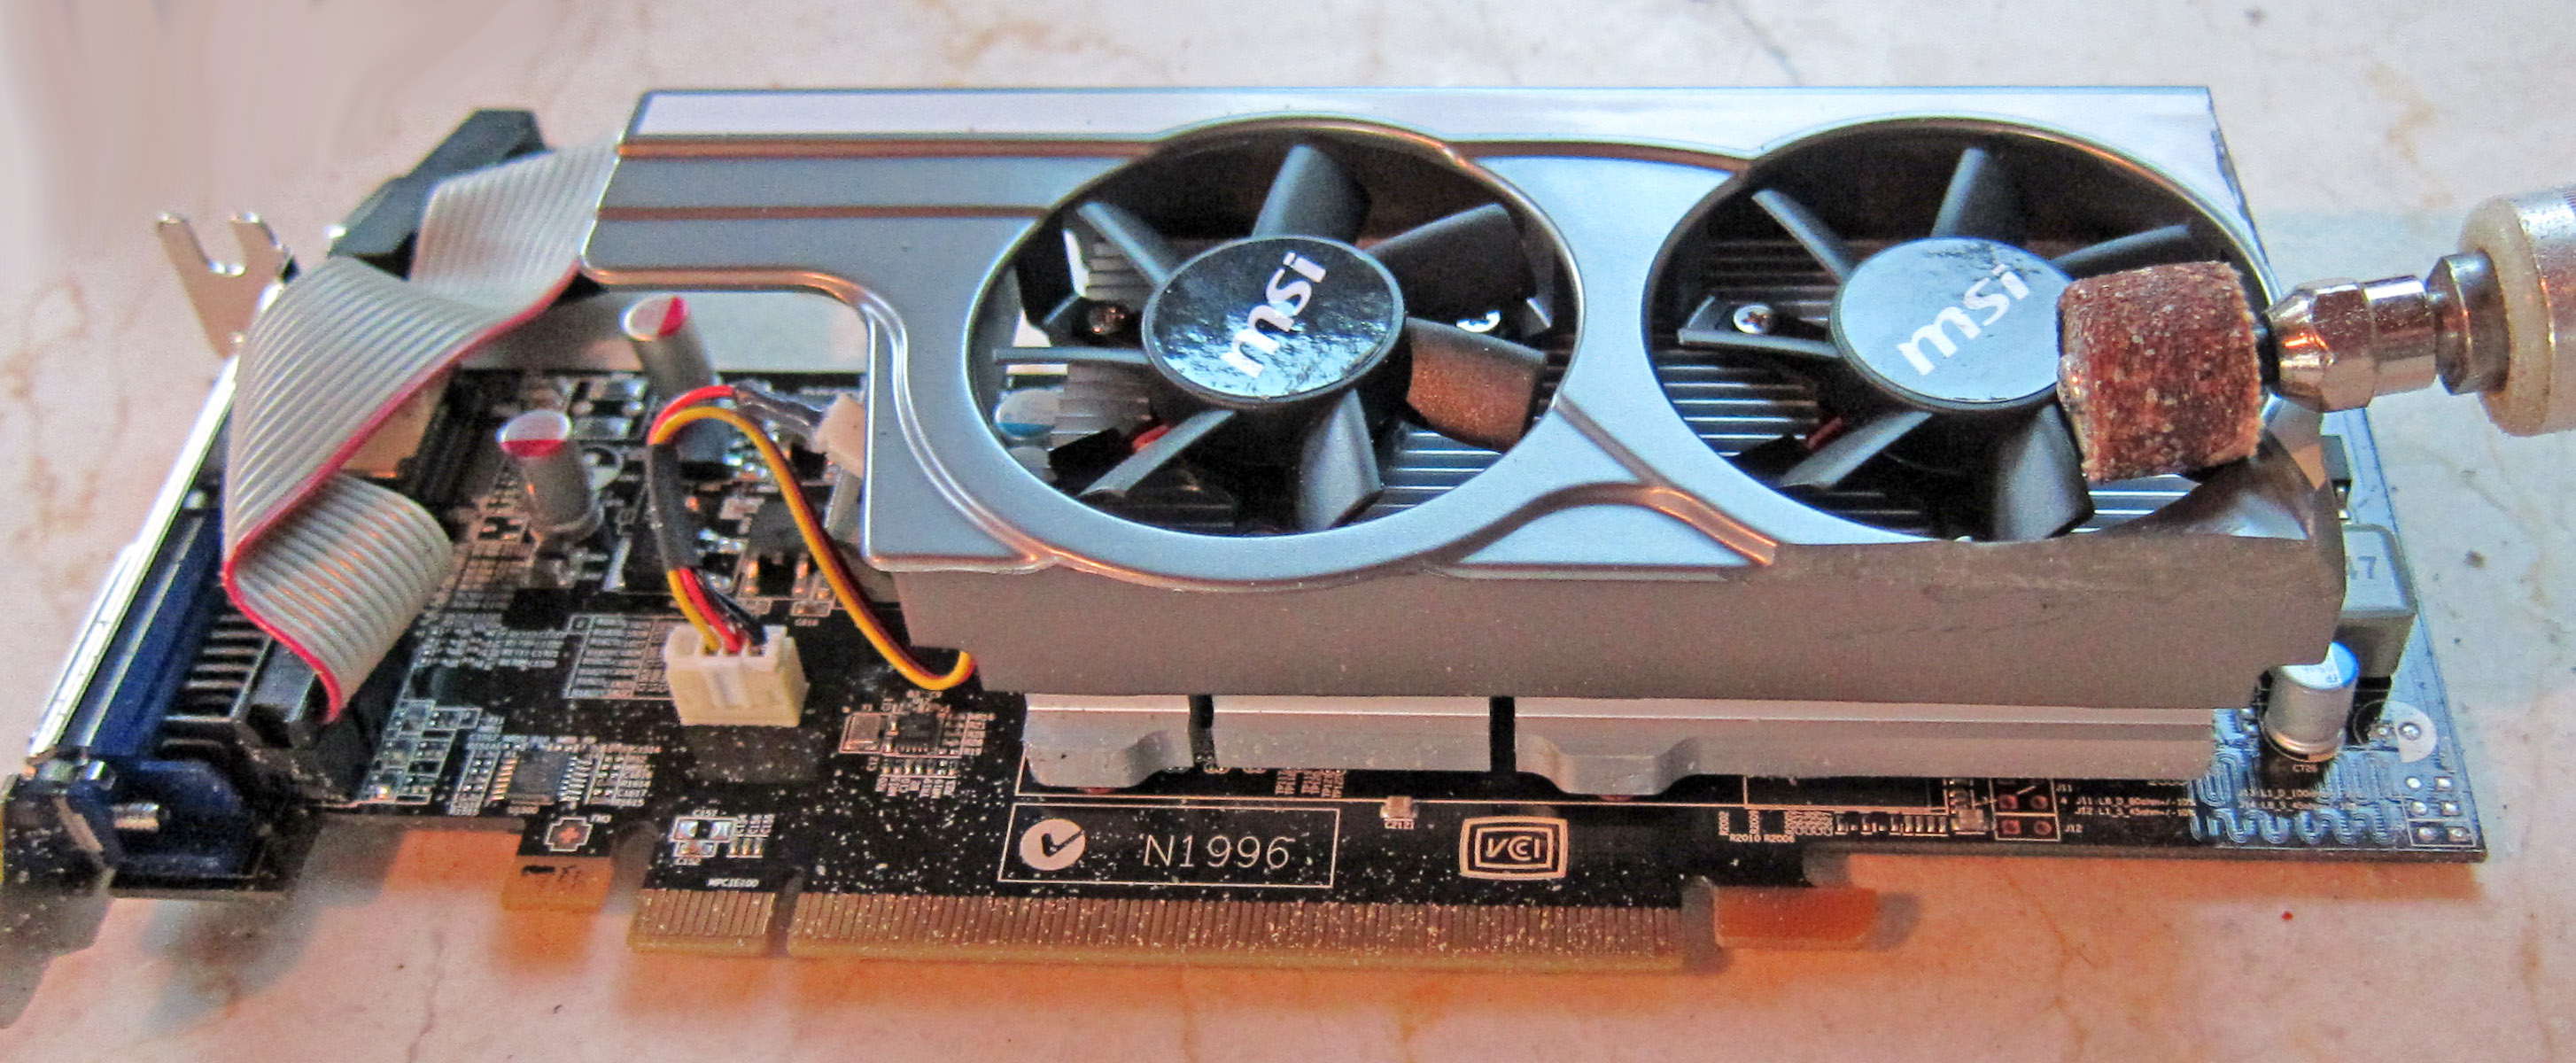 2011 Low Profile Gaming Graphics Card